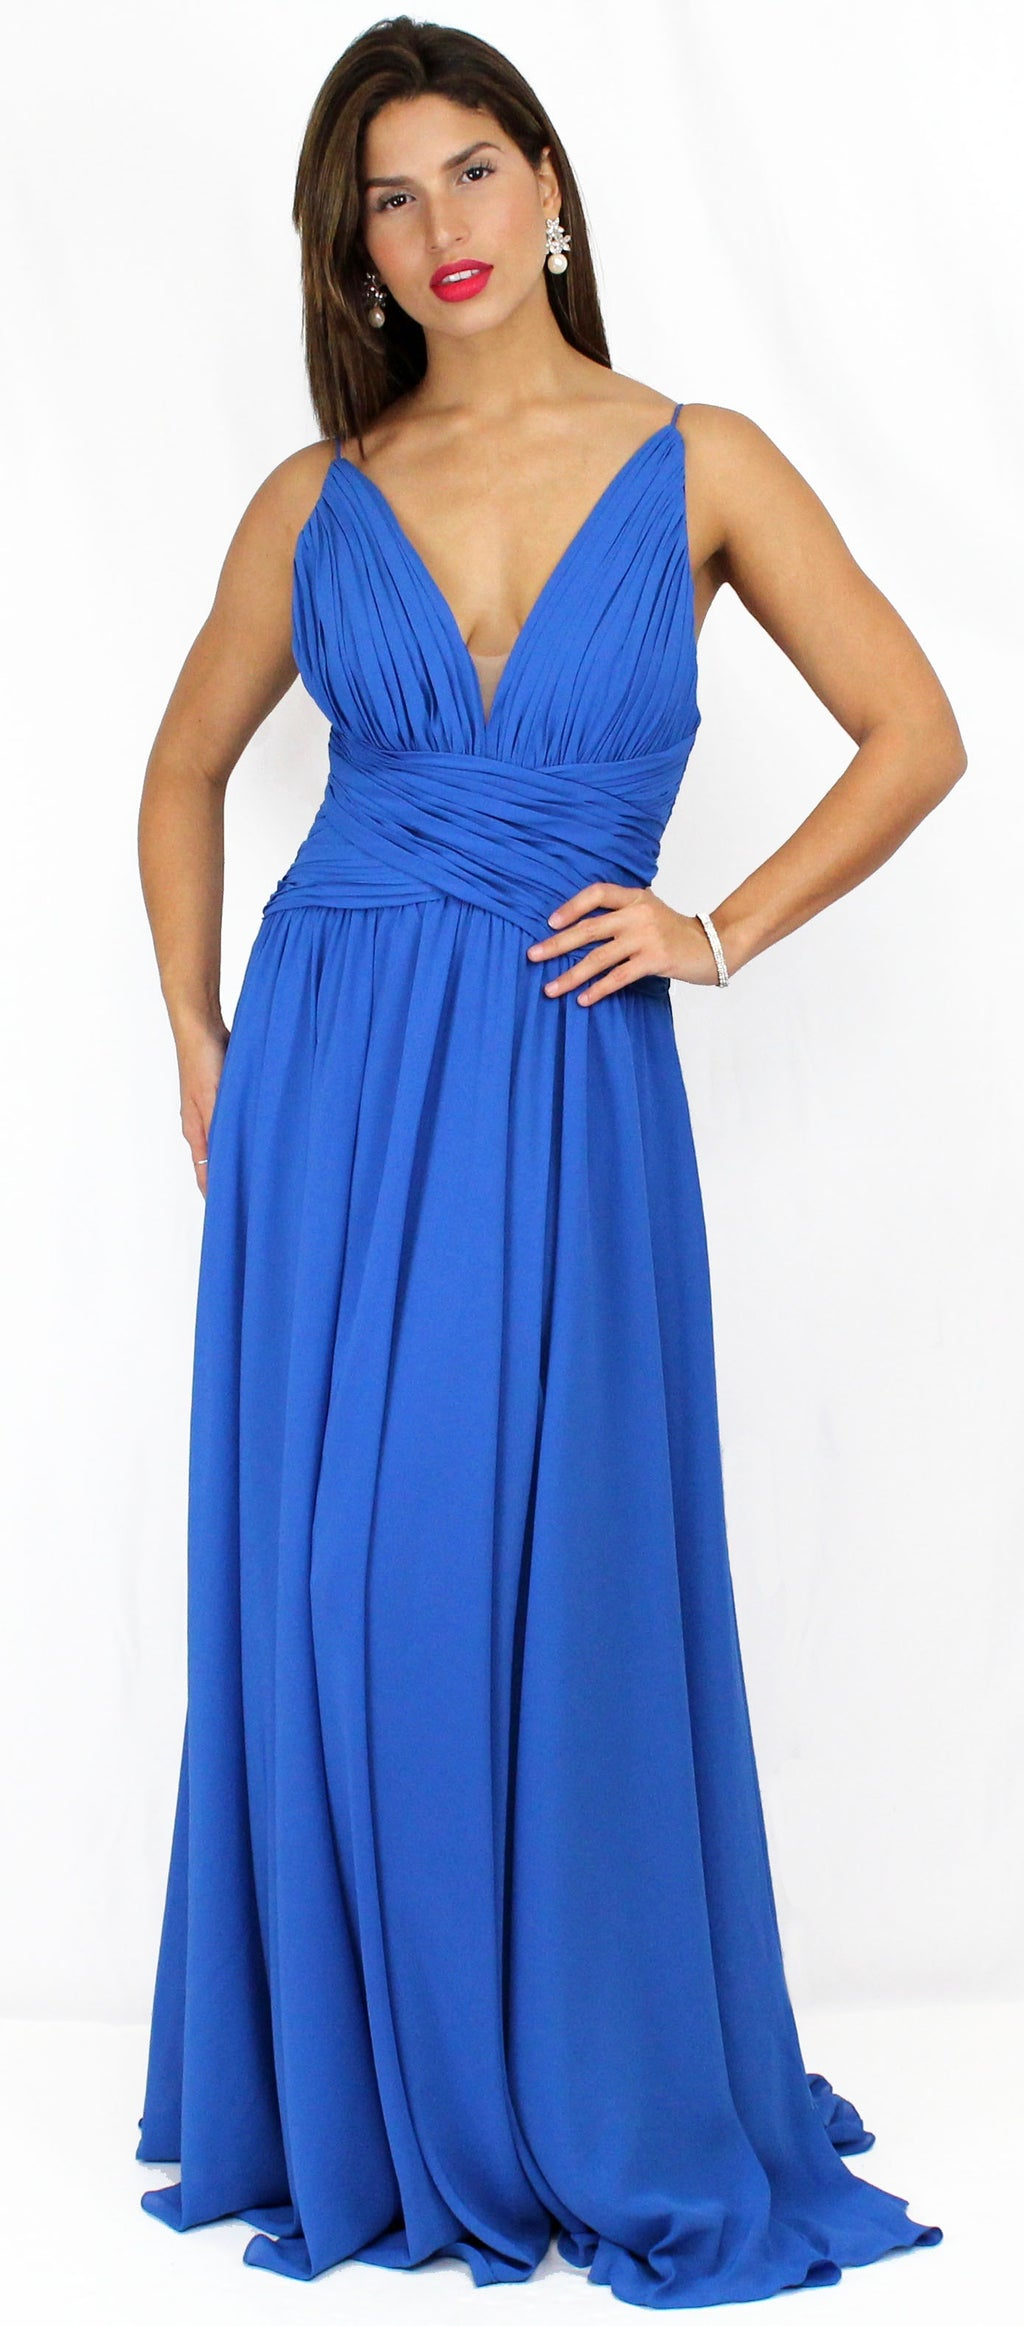 All About Love Royal Blue Formal Gown